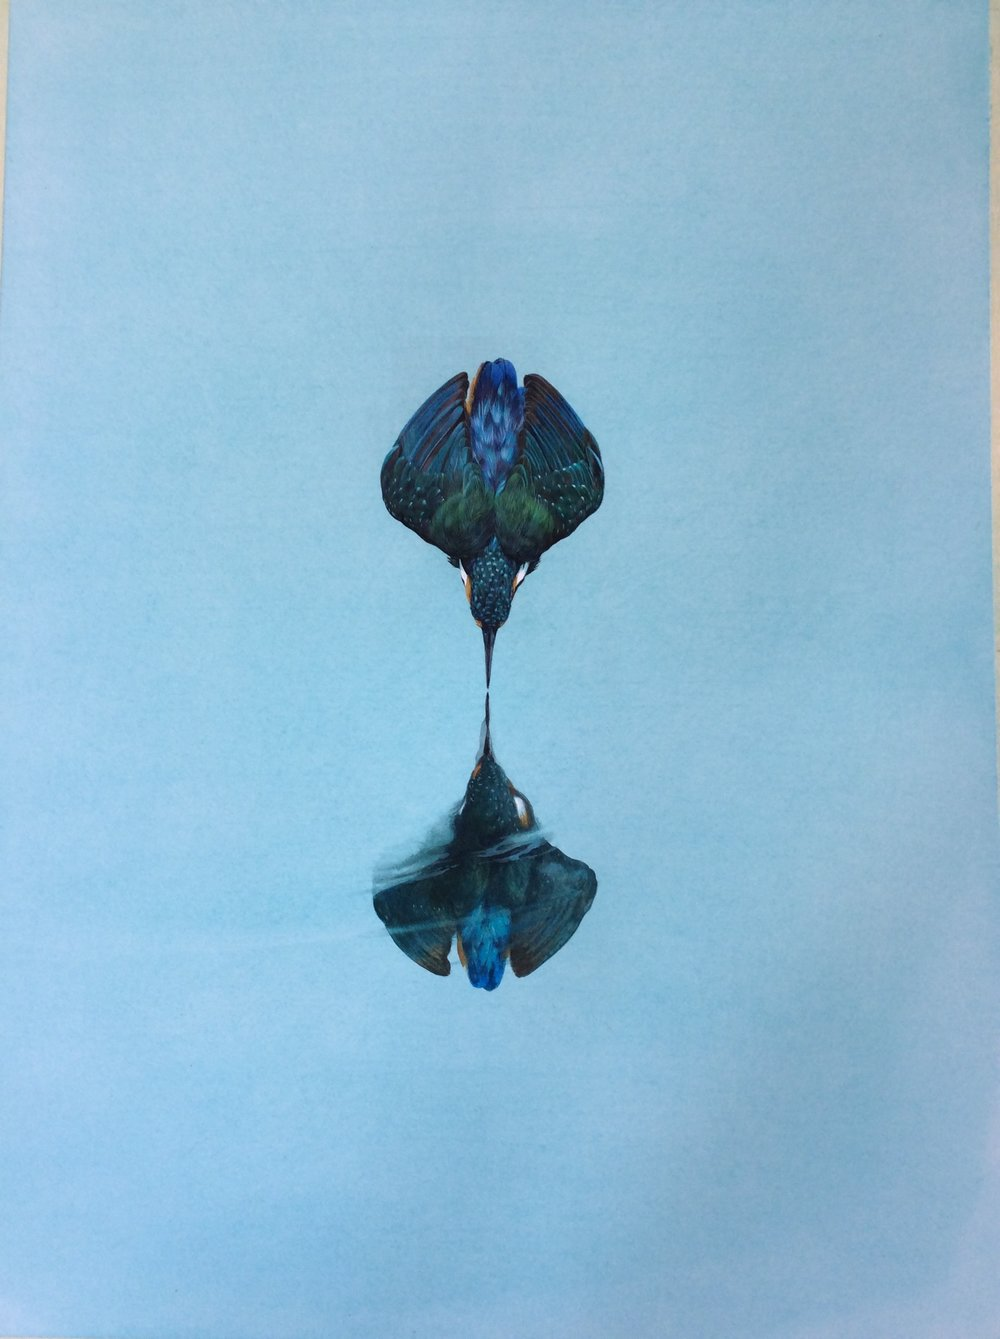 Reflection Turquoise. Watercolour. Watercolour and Gouache 24 x 18 ins / 61 x 45.7 cm Tim Hayward